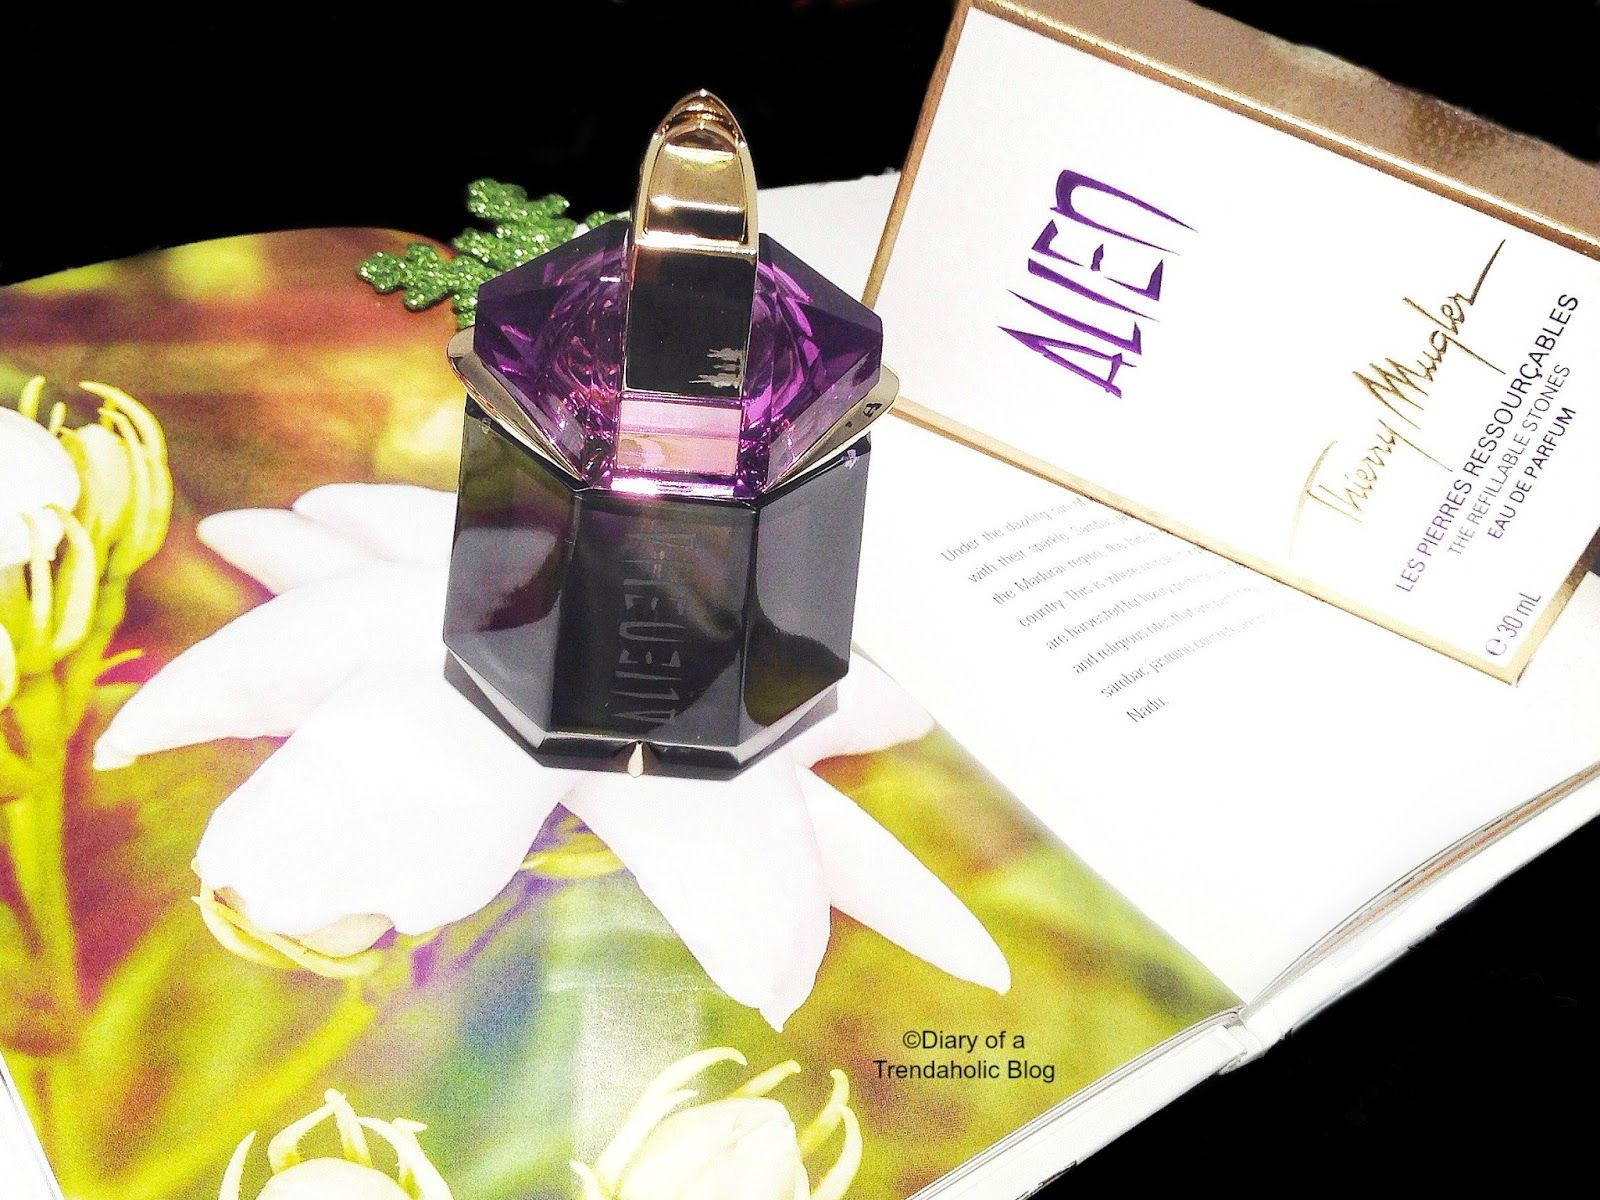 Alien by Thierrry Mugler...smells so good!